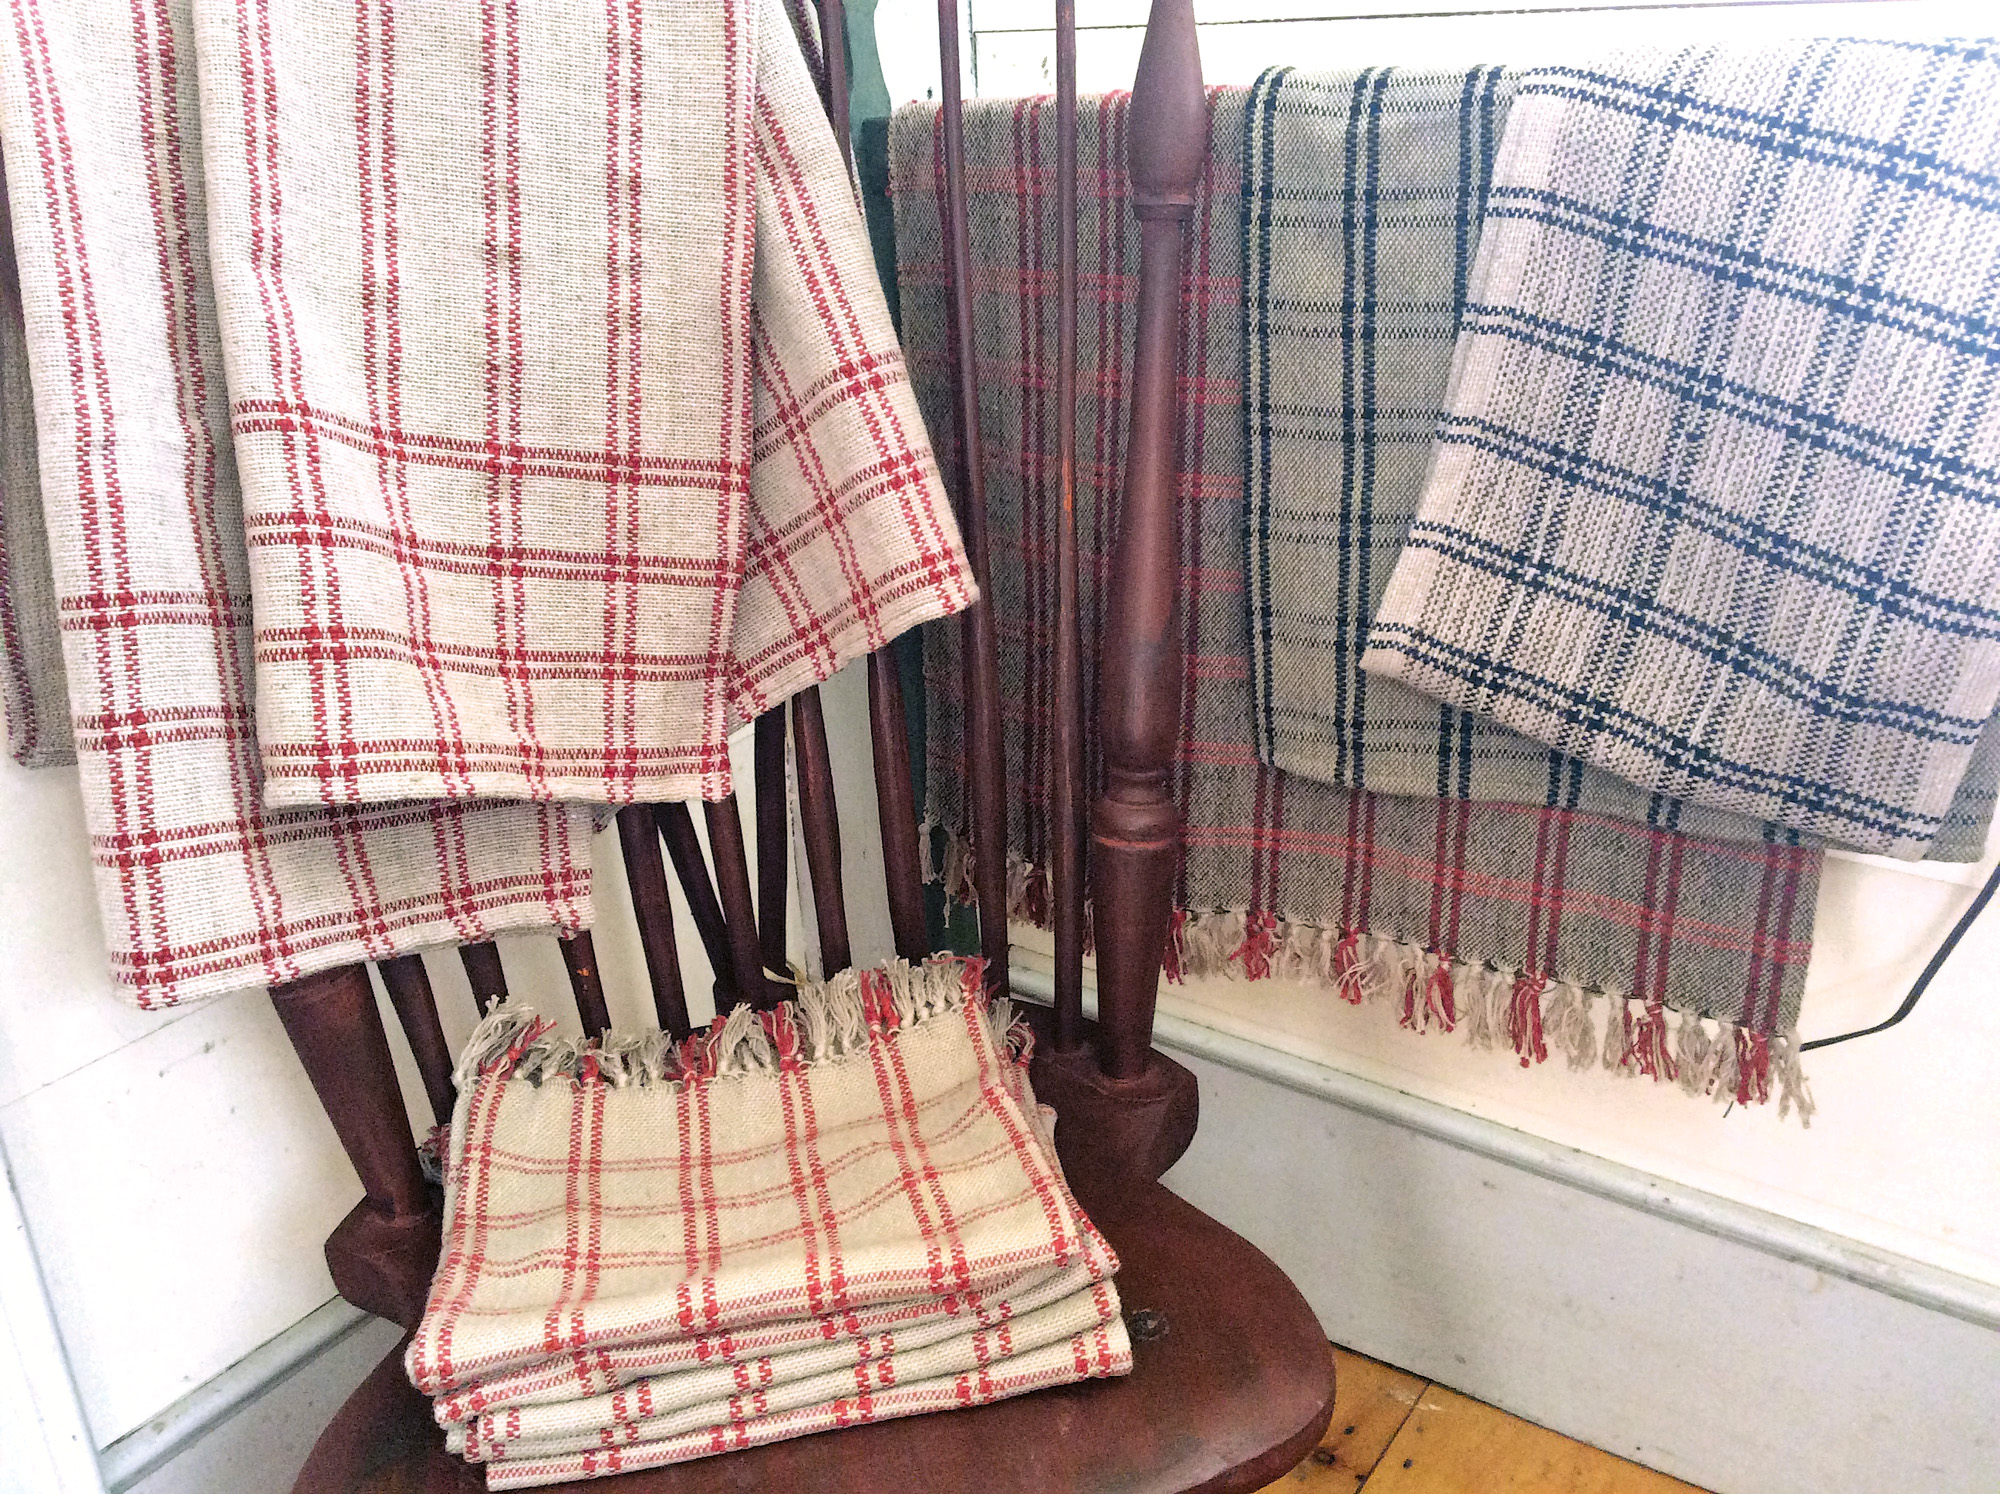 Leck weaves rugs, curtains, table toppers, shawls, bedspreads and throws.